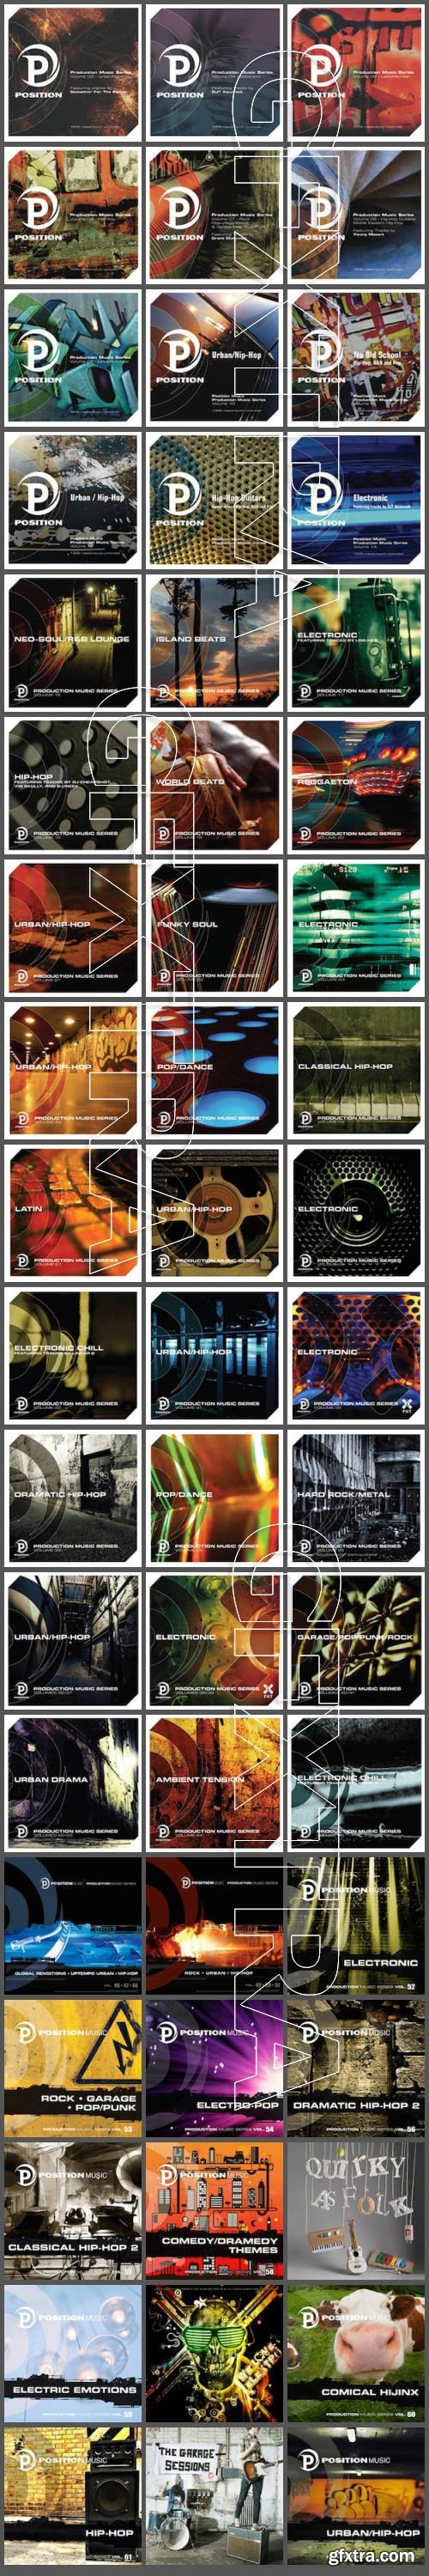 Position Music - Production Music Series All PMS001-211 (MP3)